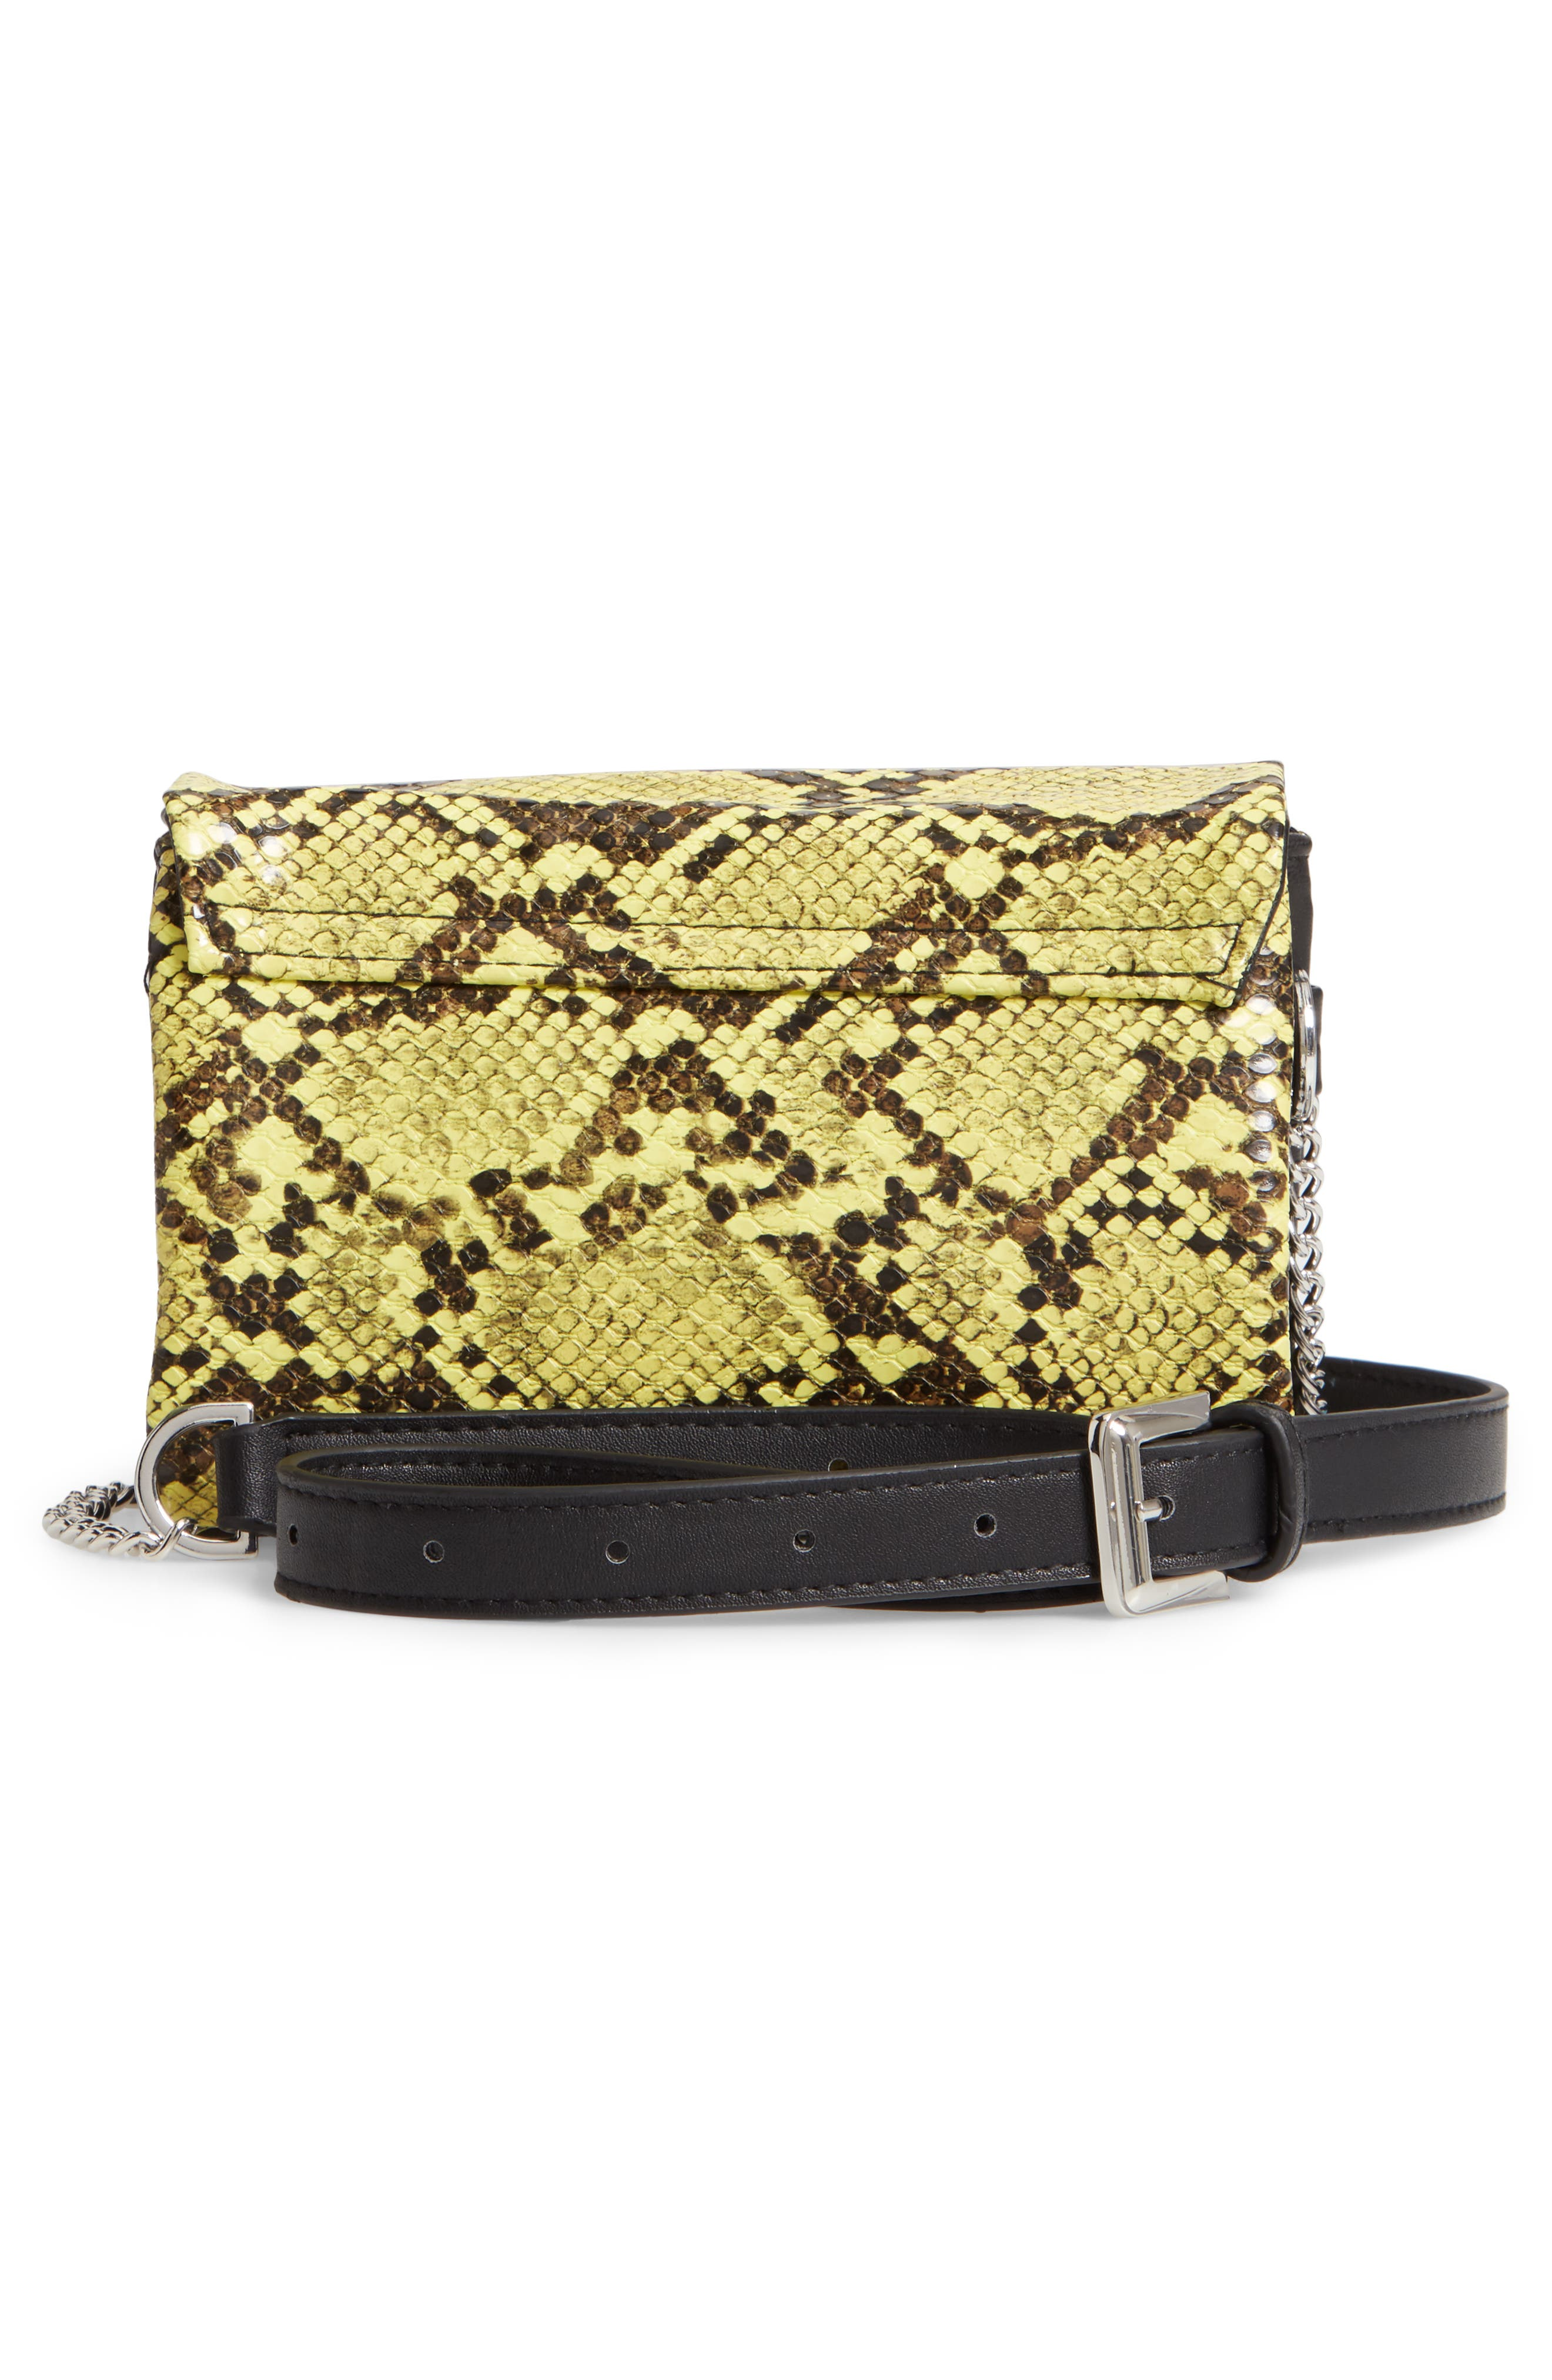 TOPSHOP,                             Beau Belt Bag,                             Alternate thumbnail 3, color,                             700